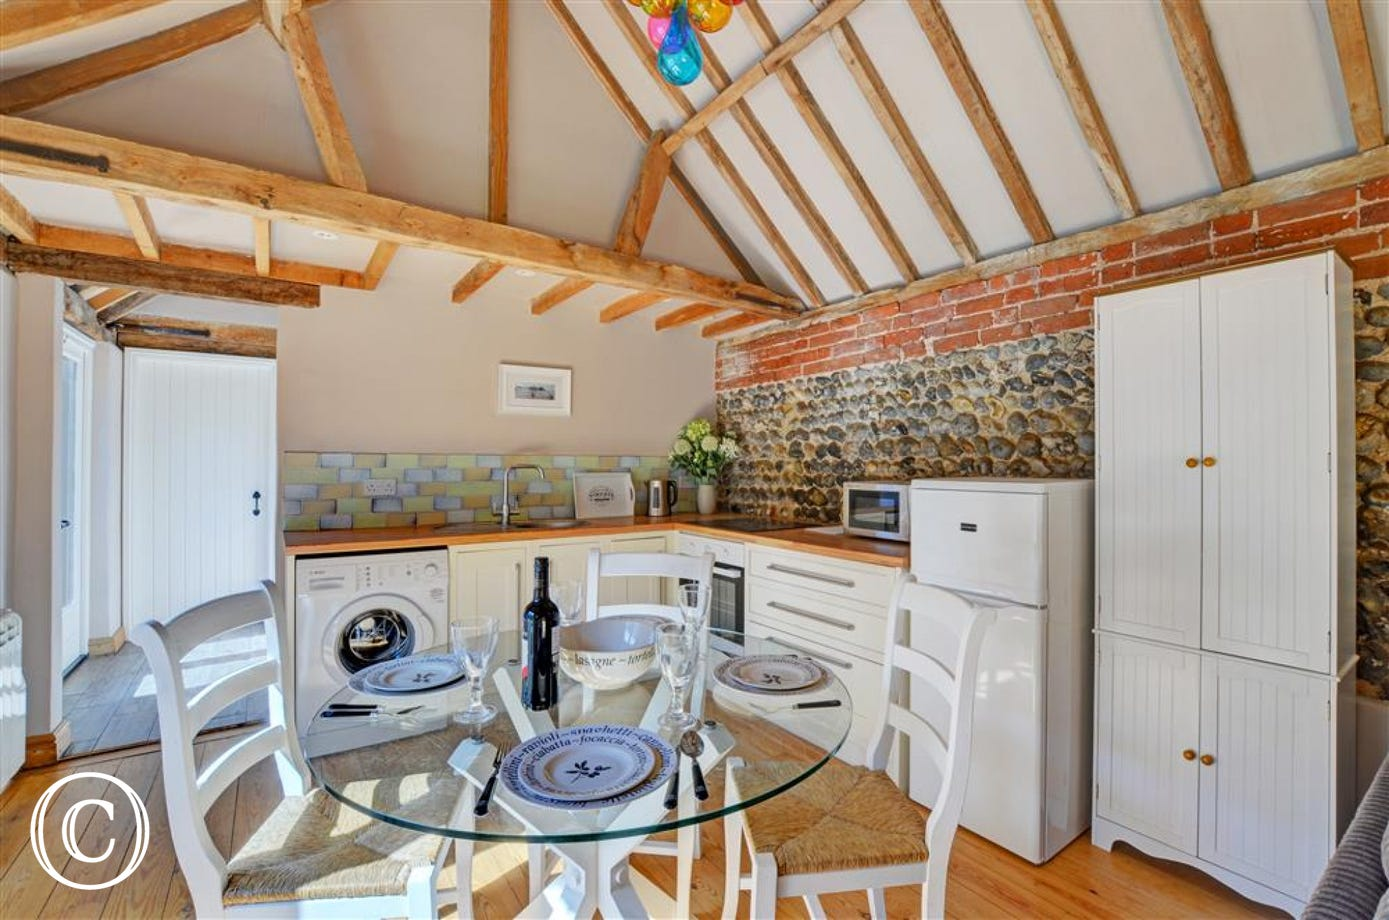 The kitchen is a lovely rustic room with electric oven and hob